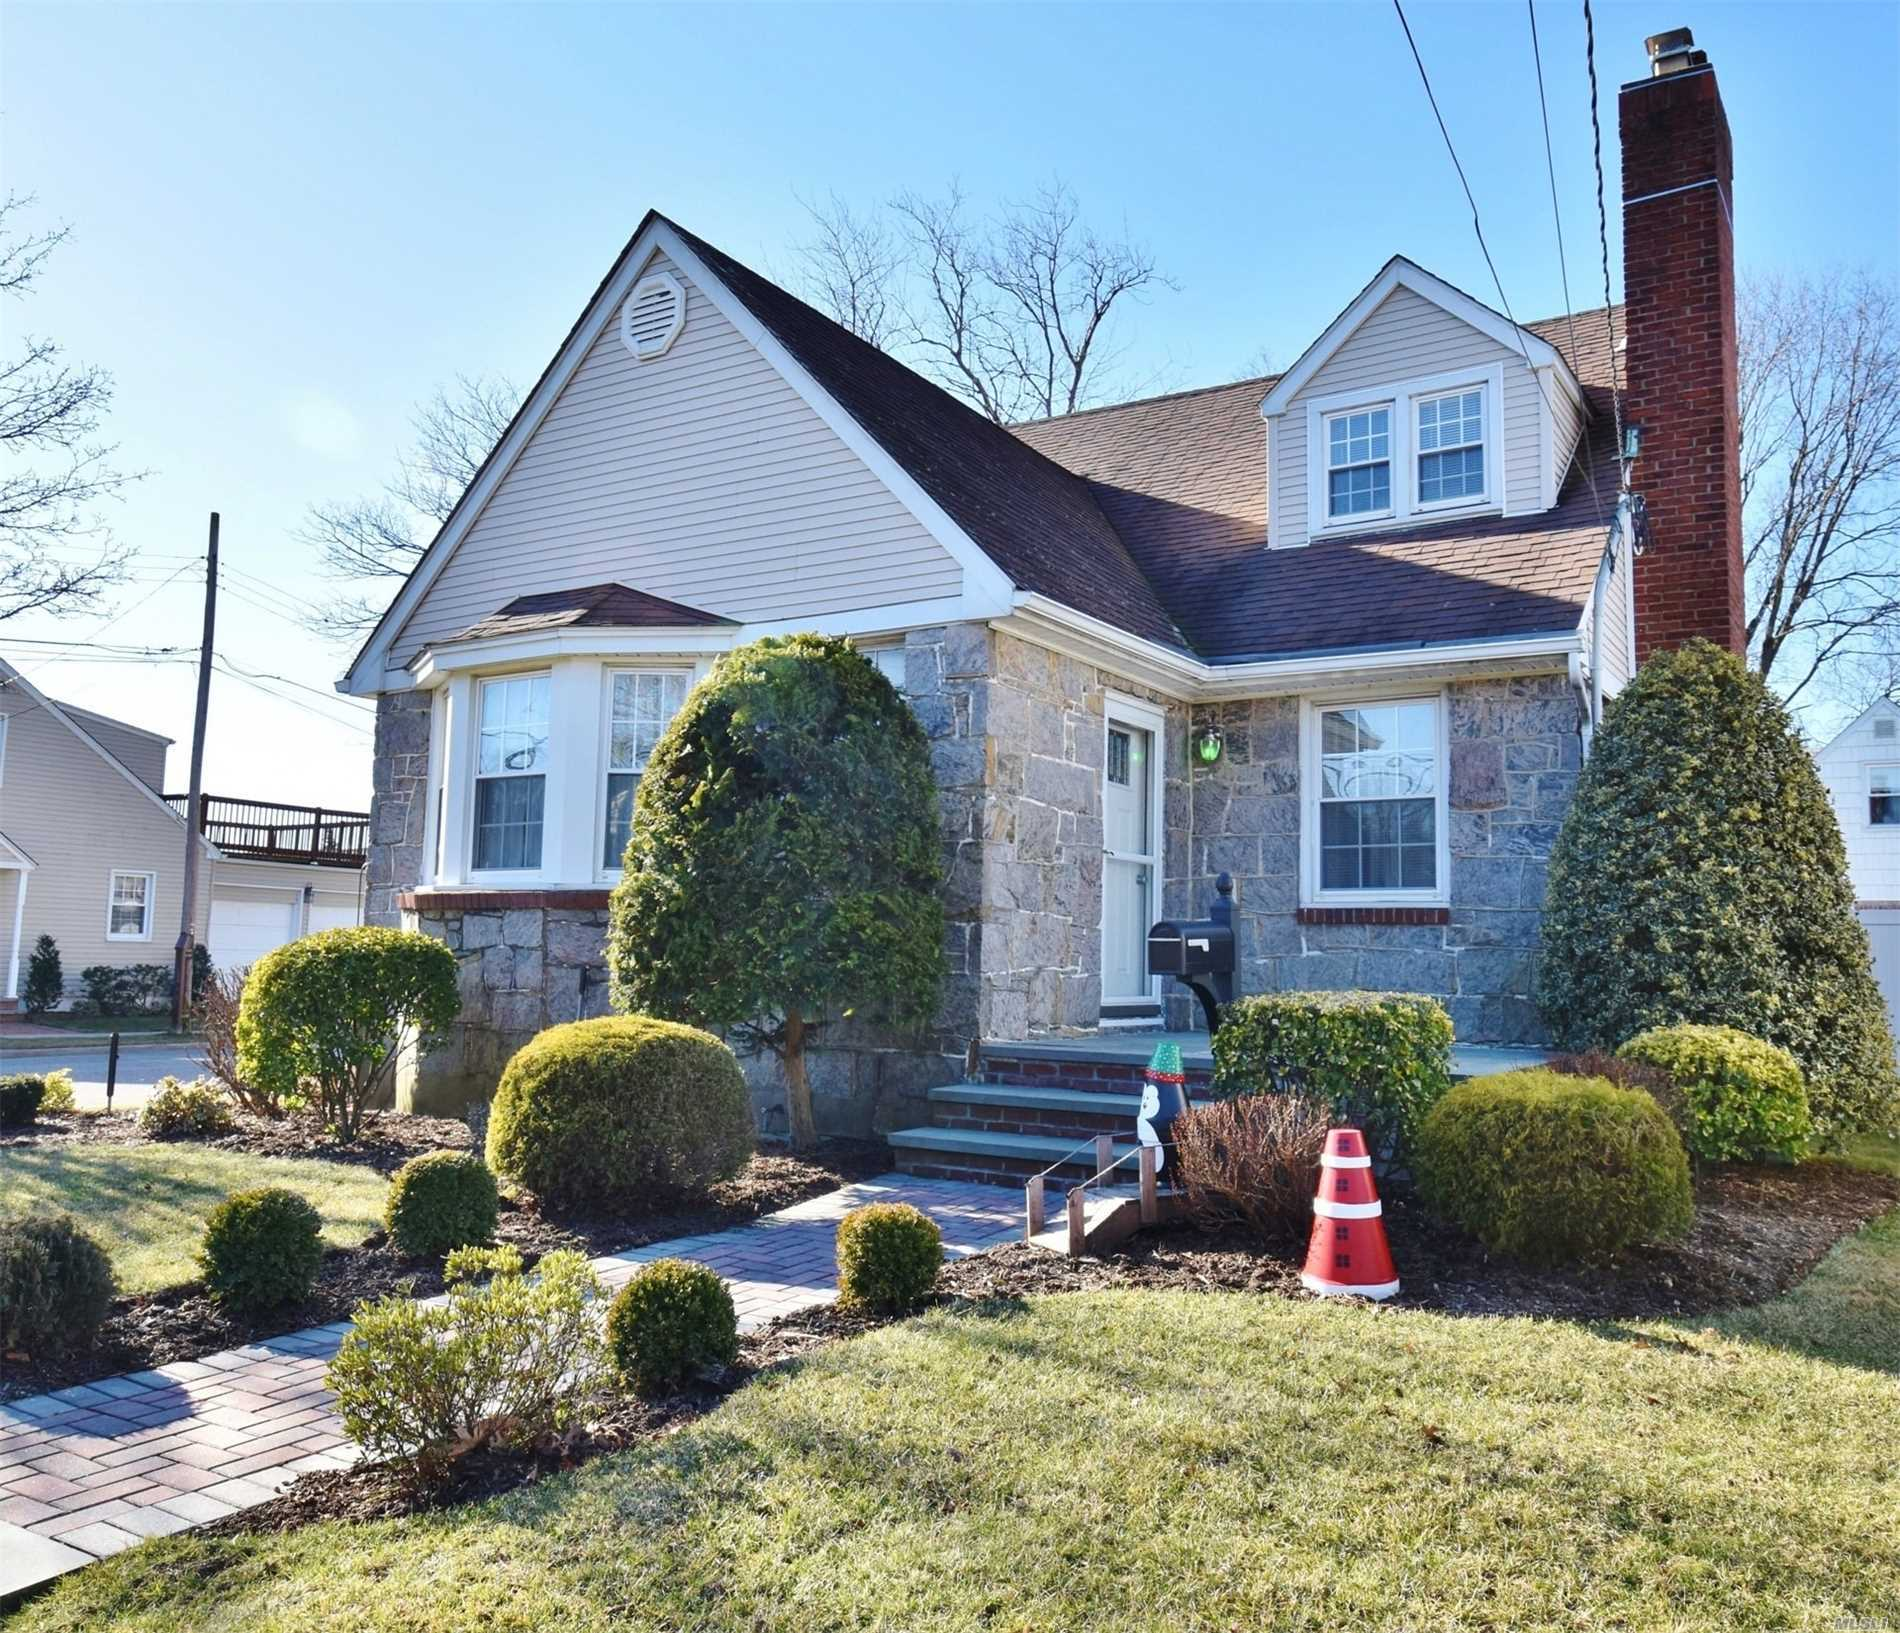 Charming, Renovated Home In Village Of Mineola. 2 Br & Bath 2nd Flr + 2 Br & Bath 1st Flr. King Size Bedroom On 2nd Floor W/ Terrace & Access To Gorgeous Bath. Sunny Formal Dining Room. Warm Living Room W/ Fireplace. Beautiful 1st Flr Bath. Bonus Family Room W/ Patio Doors To Private Fenced Yard. Large Basement For Parties & Home Theater. Modern 6-Zone Ductless Cooling/Heating System. In-Ground Sprinklers. Corner Property W/ Quiet Cul De Sac Side Street. Lots To Love! Move-In Ready!